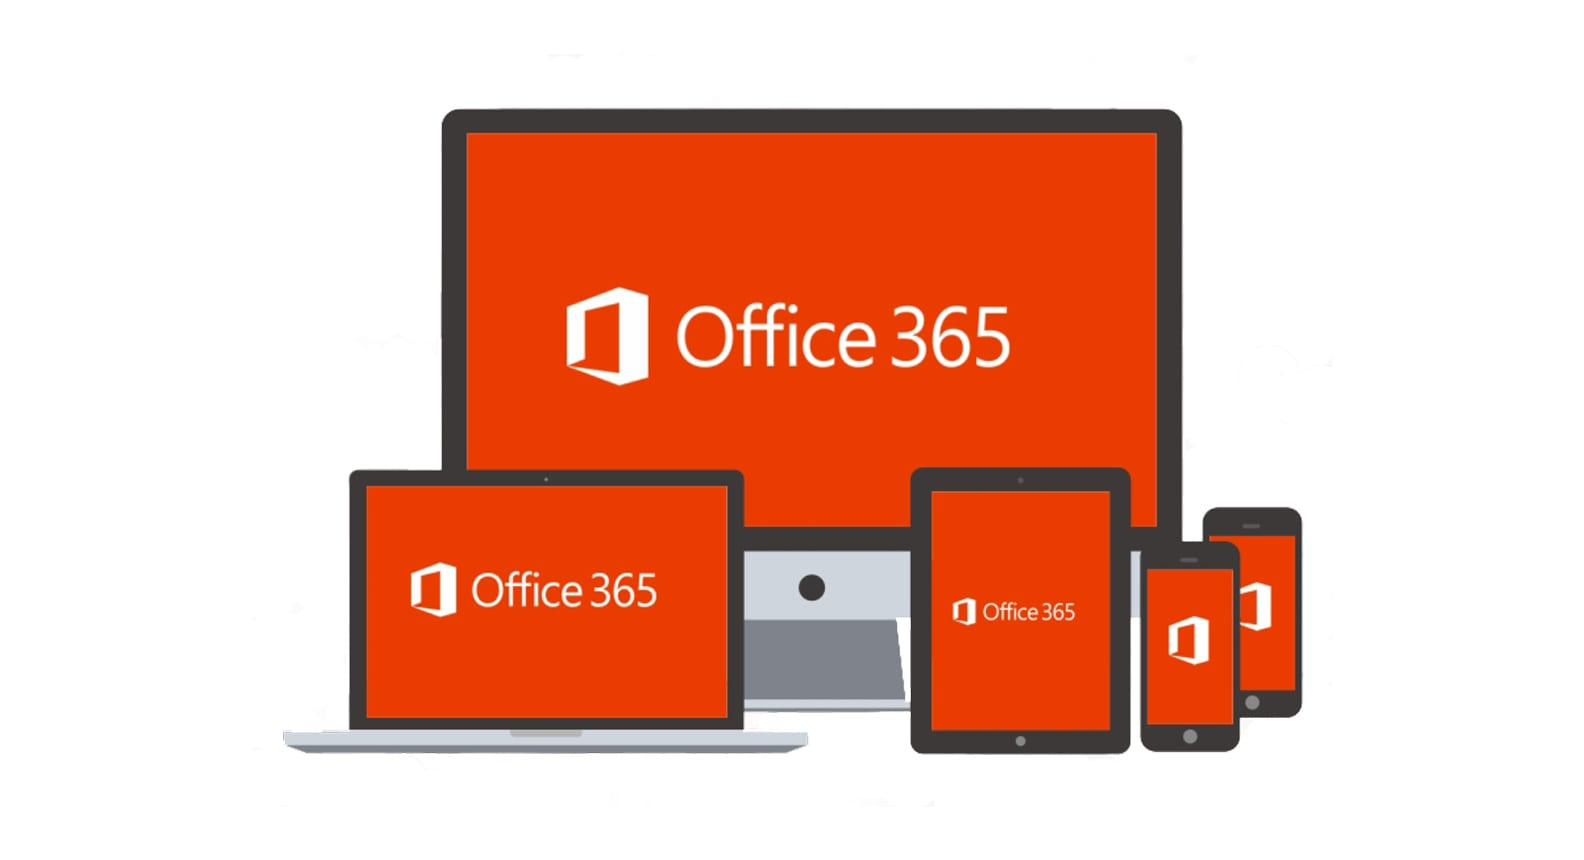 What Are the Advantages and Disadvantages of Office 365?